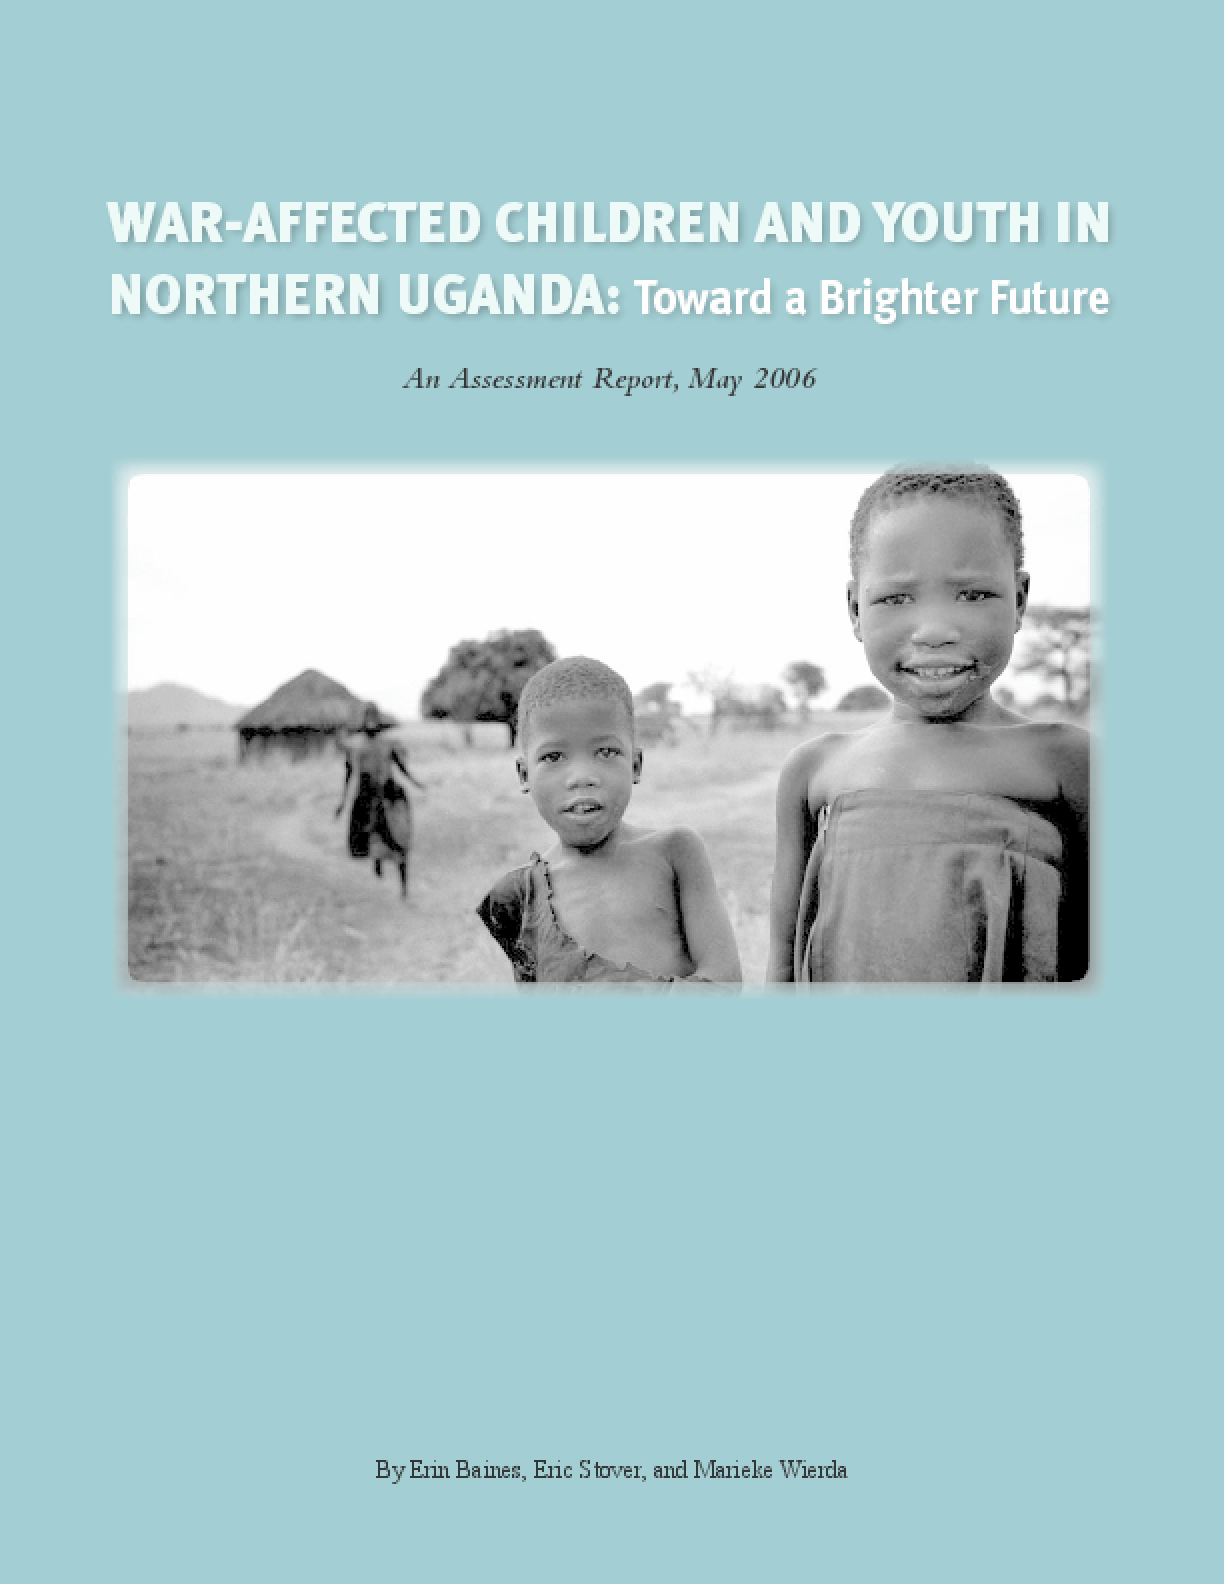 War-Affected Children and Youth in Northern Uganda: Toward a Brighter Future